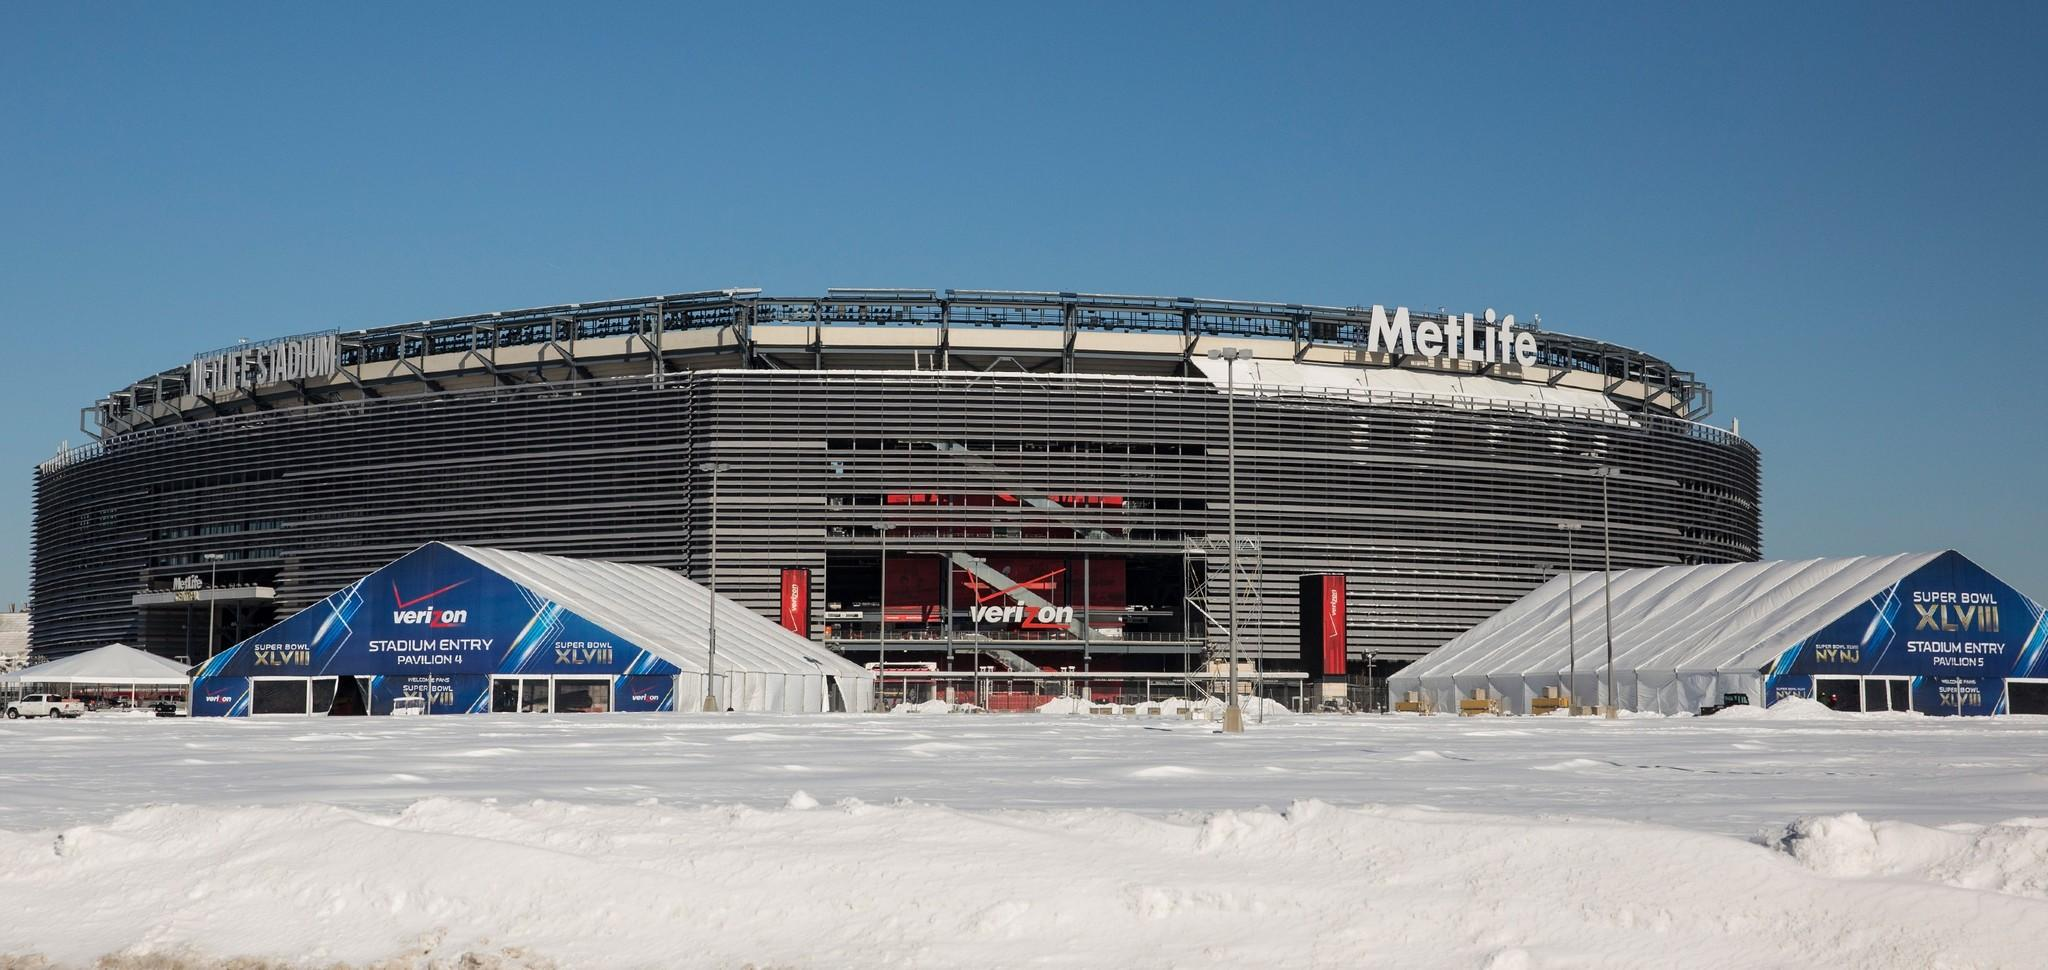 Snow surrounds MetLife Stadium, which will host Superbowl XLVIII next week.